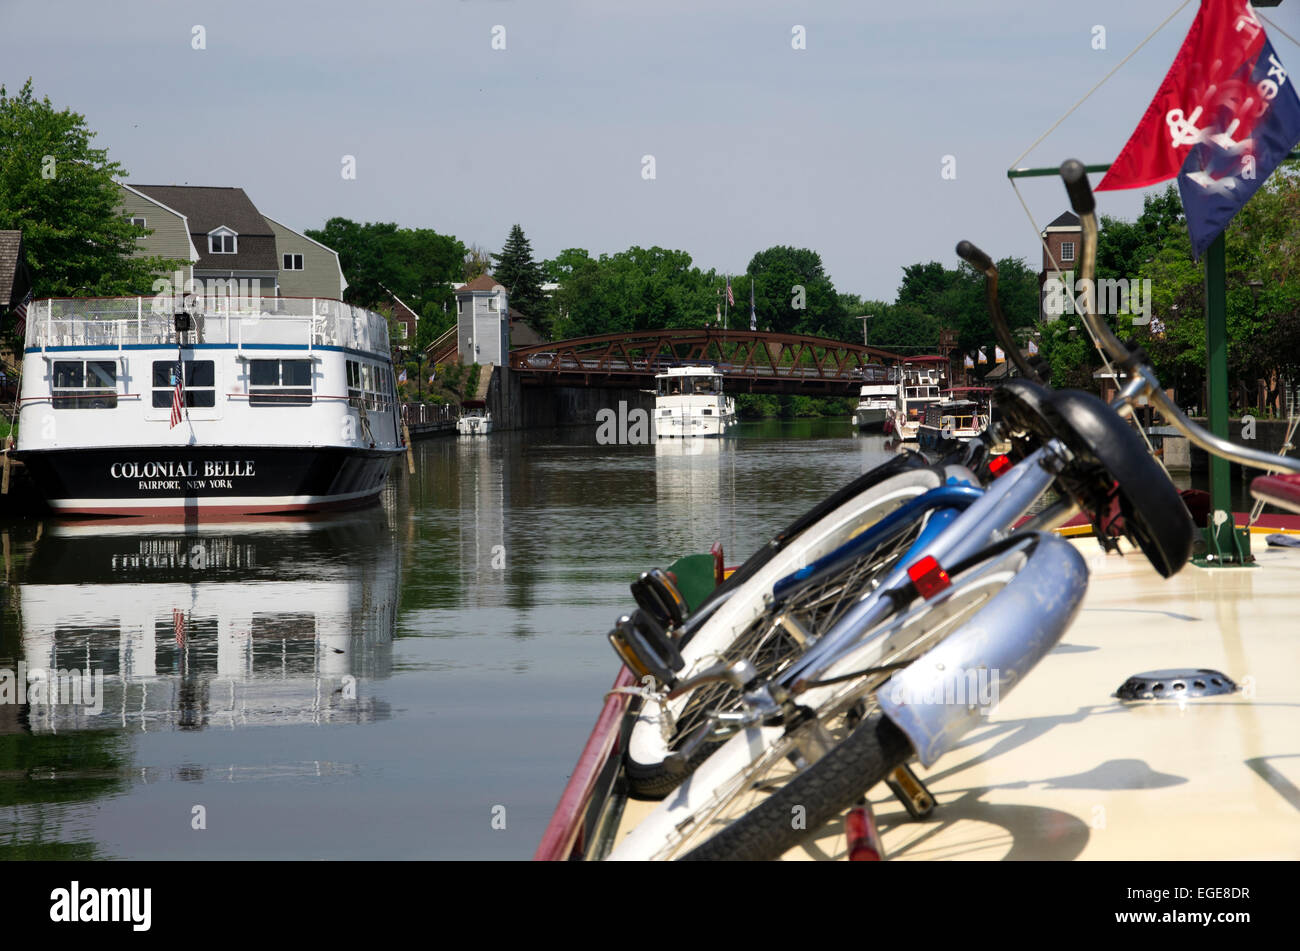 Charter boat and private yacht wait for Fairport angled bridge to open.  Dinner boat tied up. - Stock Image